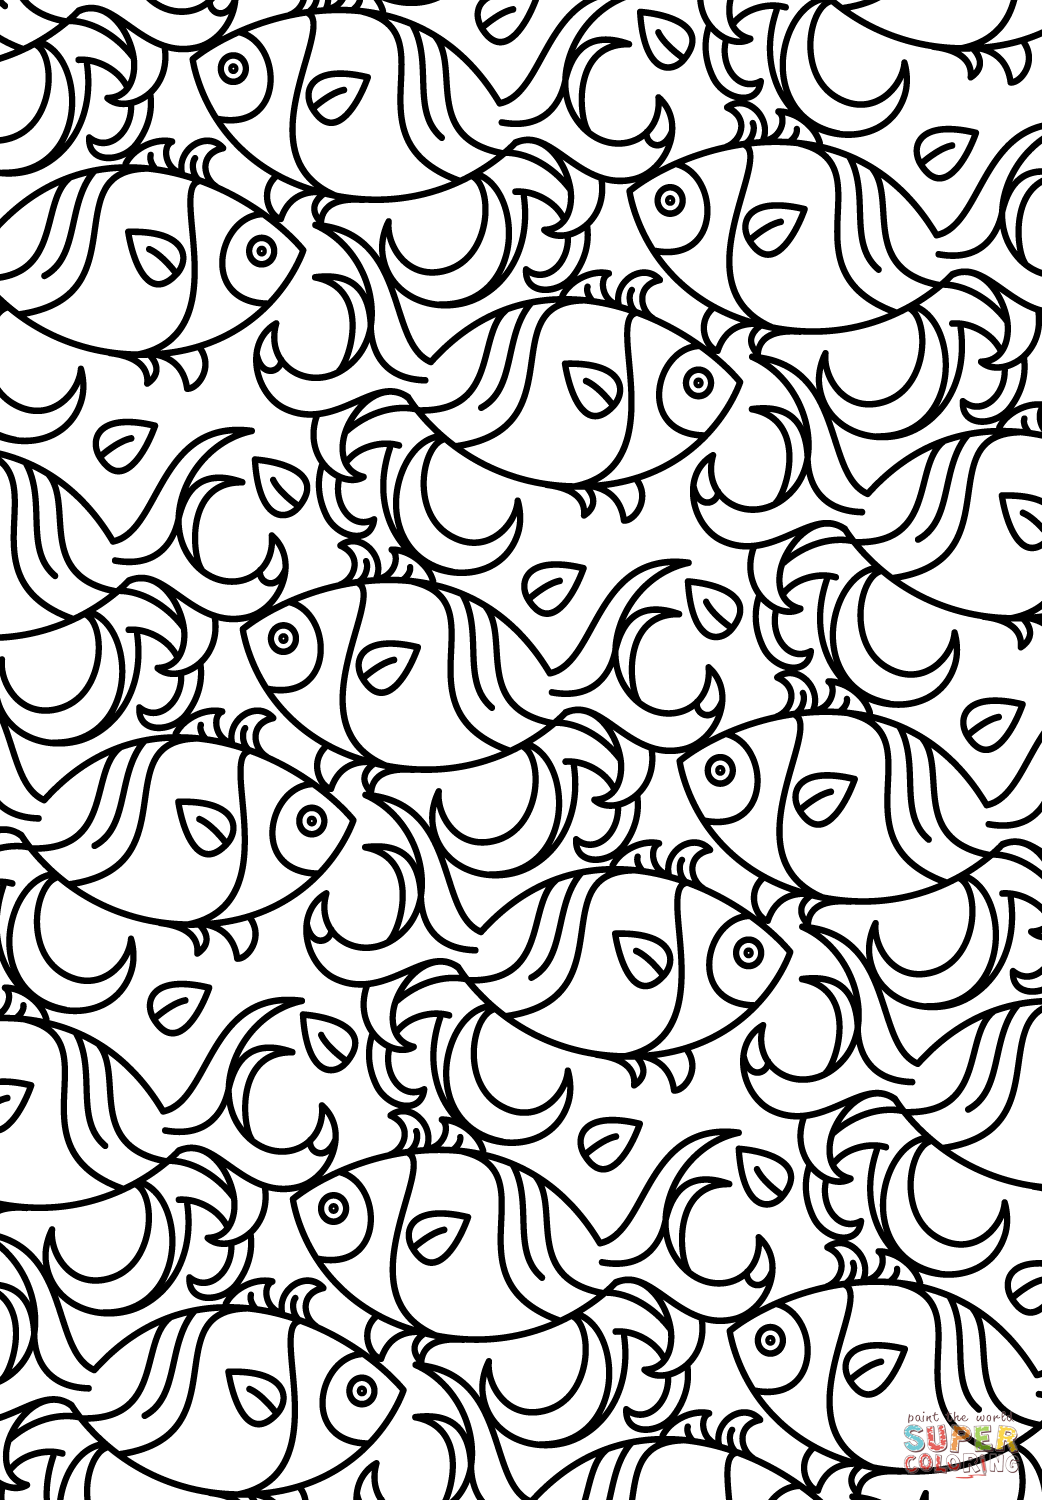 patterns to color in pattern coloring pages best coloring pages for kids patterns color in to